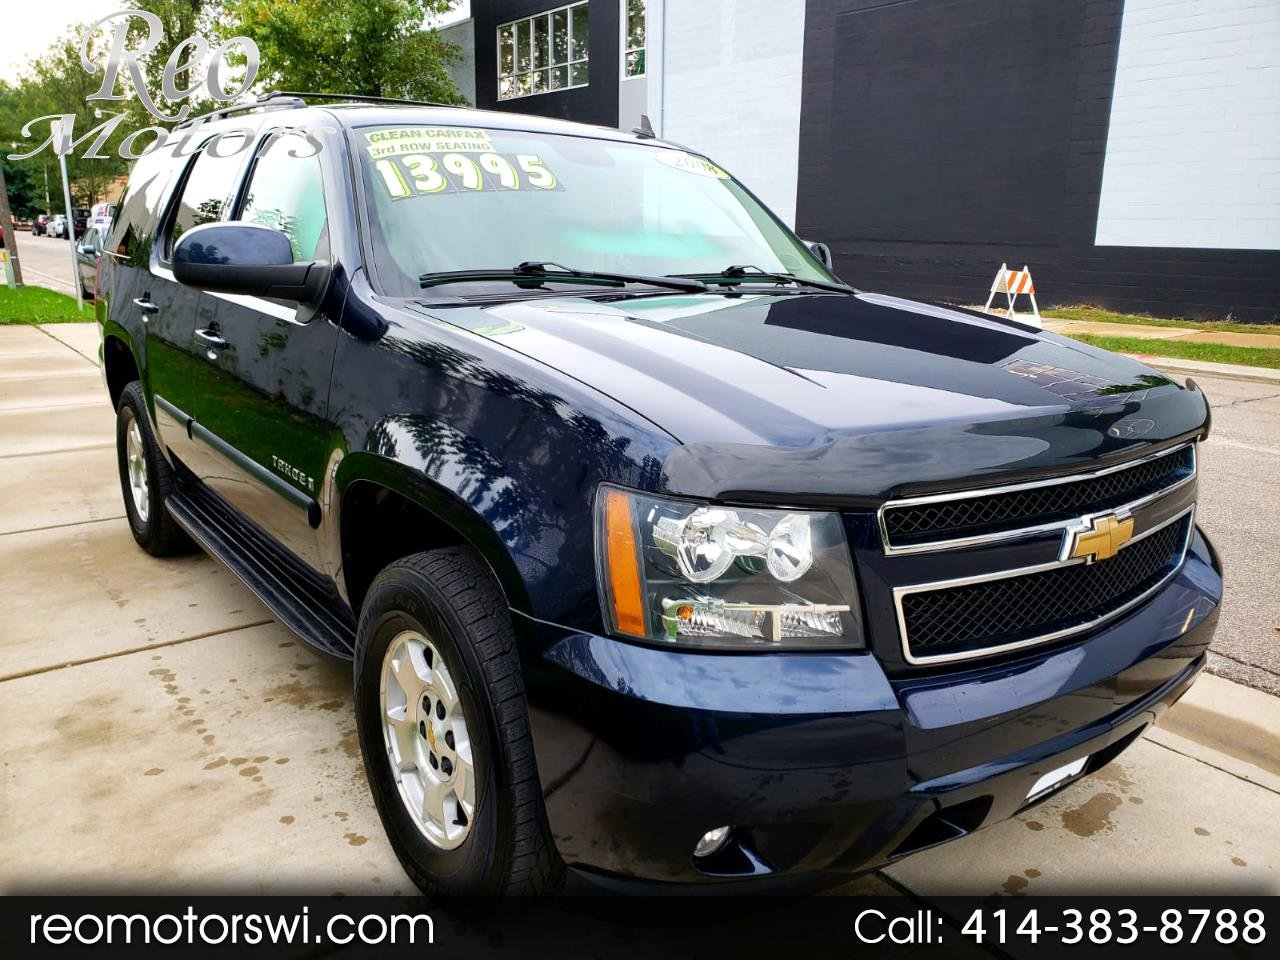 2008 Chevrolet Tahoe 4WD image